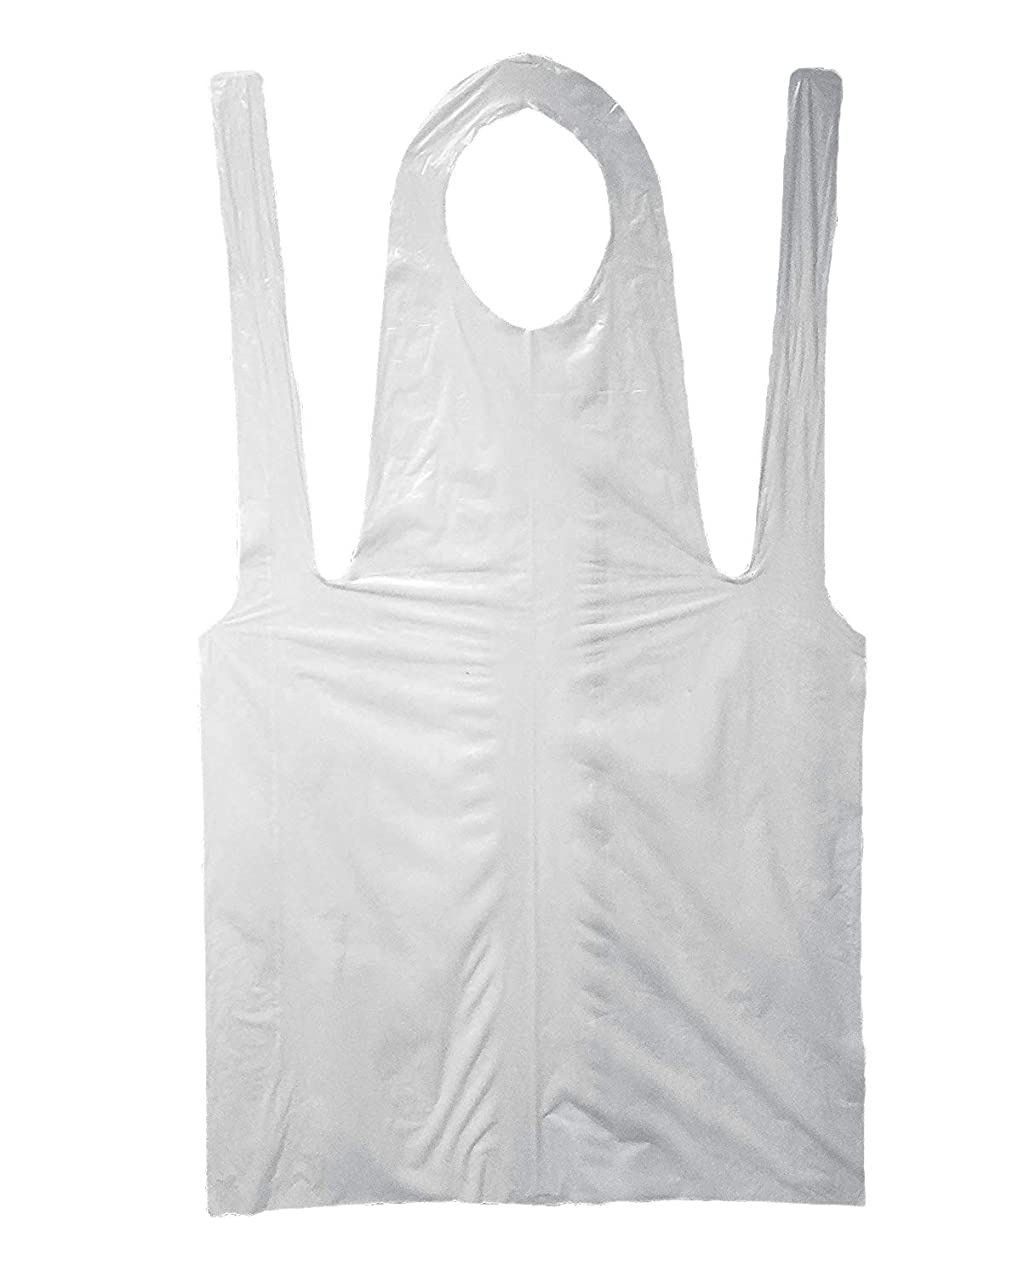 Shield Safety - Economy Disposable Poly Apron, 2 Mil (28